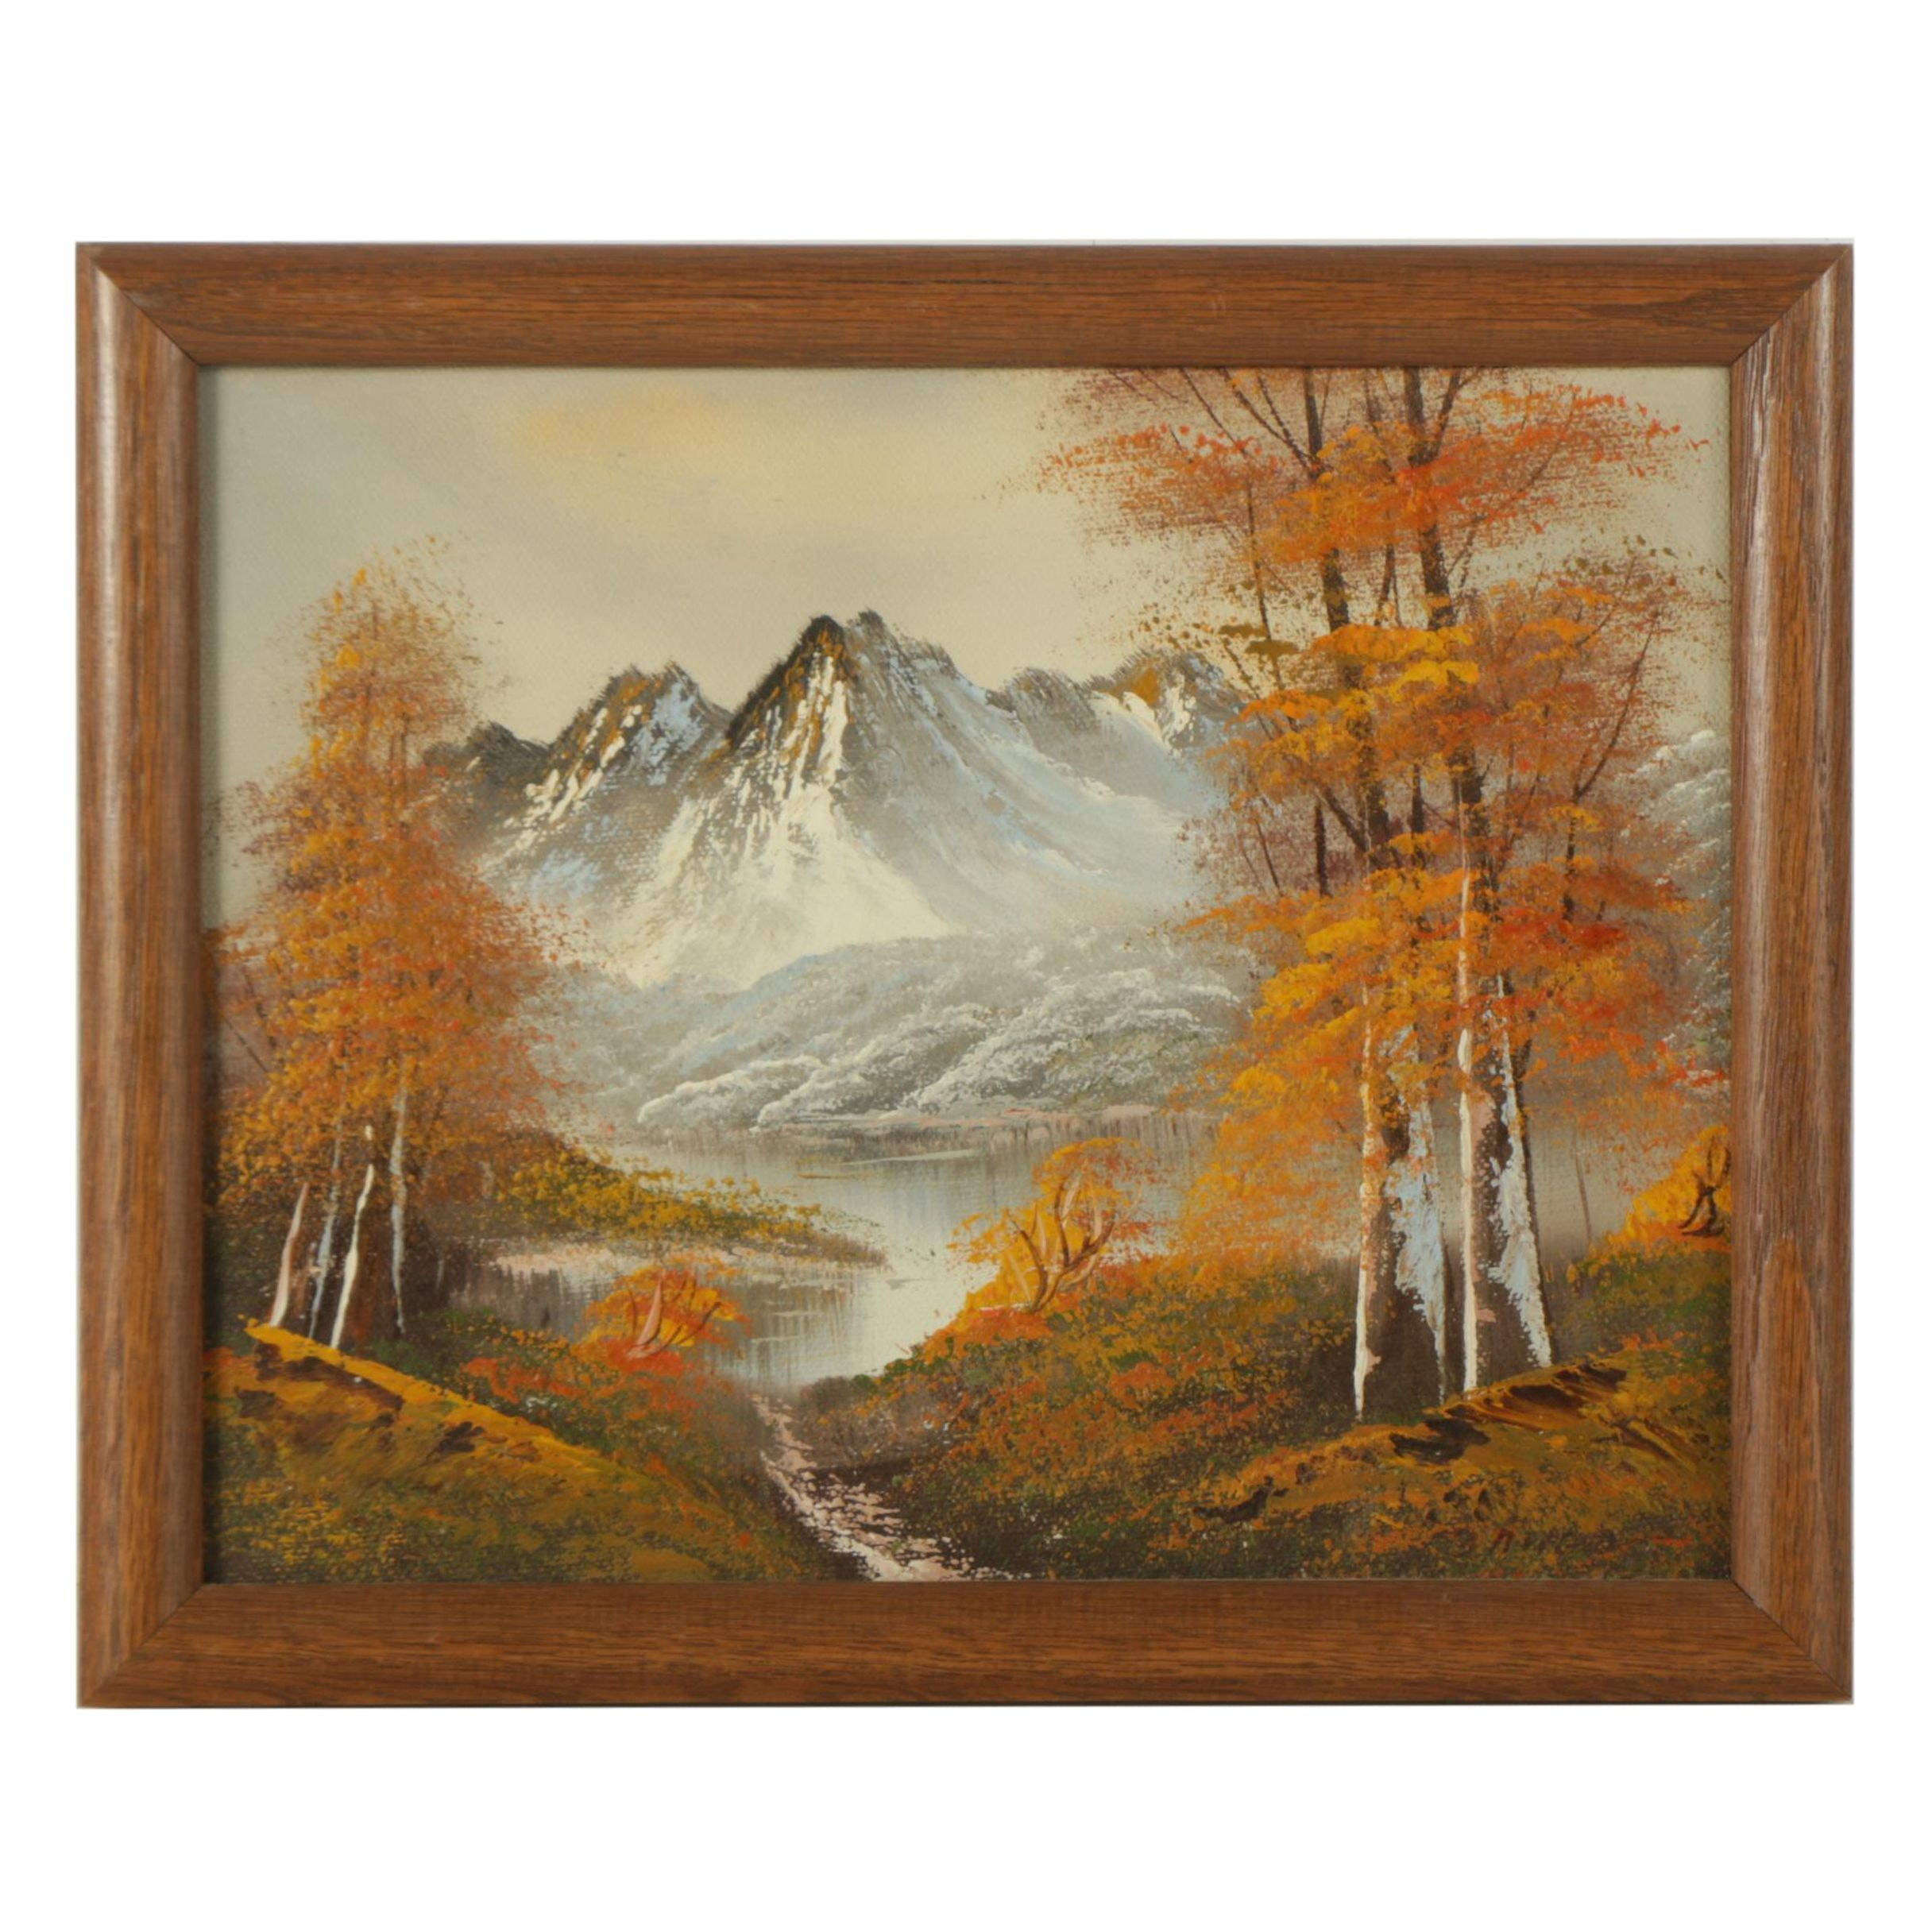 Oil Painting on Canvas Board of Mountain Scene